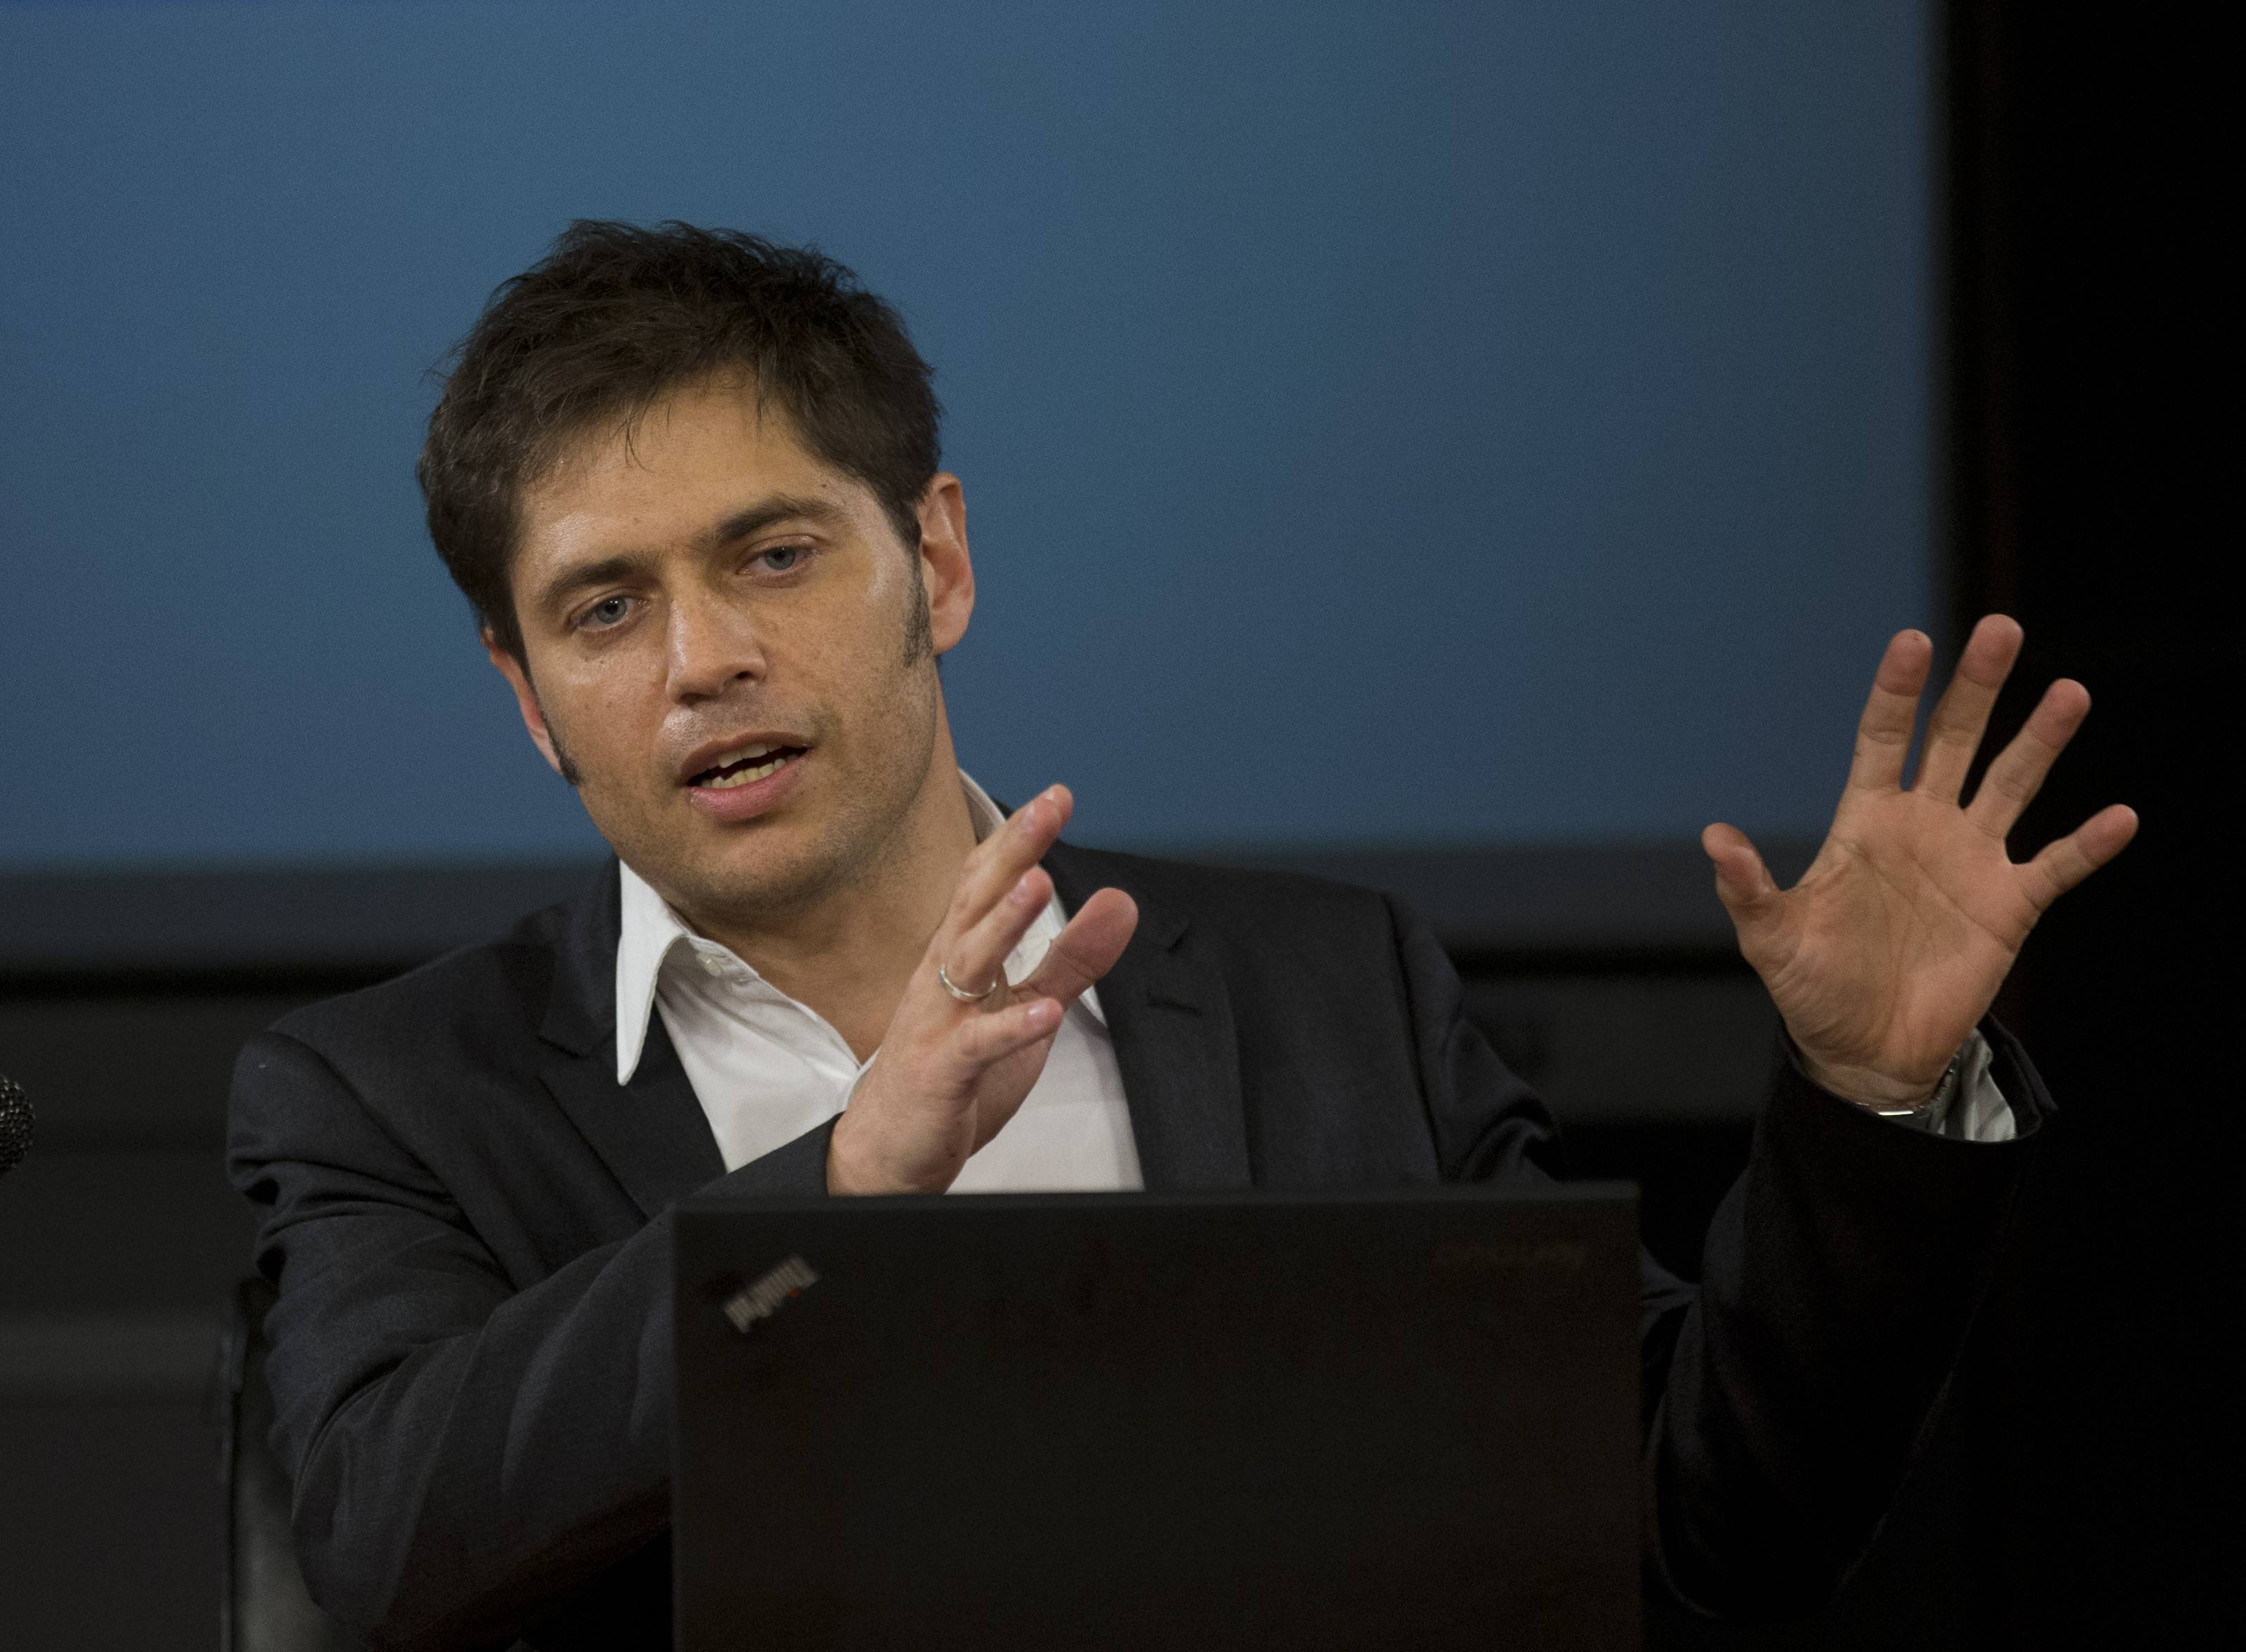 Argentina's Economy MInister Axel Kicillof talks to the media Tuesday. He says the government is working on a debt swap that would make payments in Argentina to creditors who accepted previous debt restructurings.